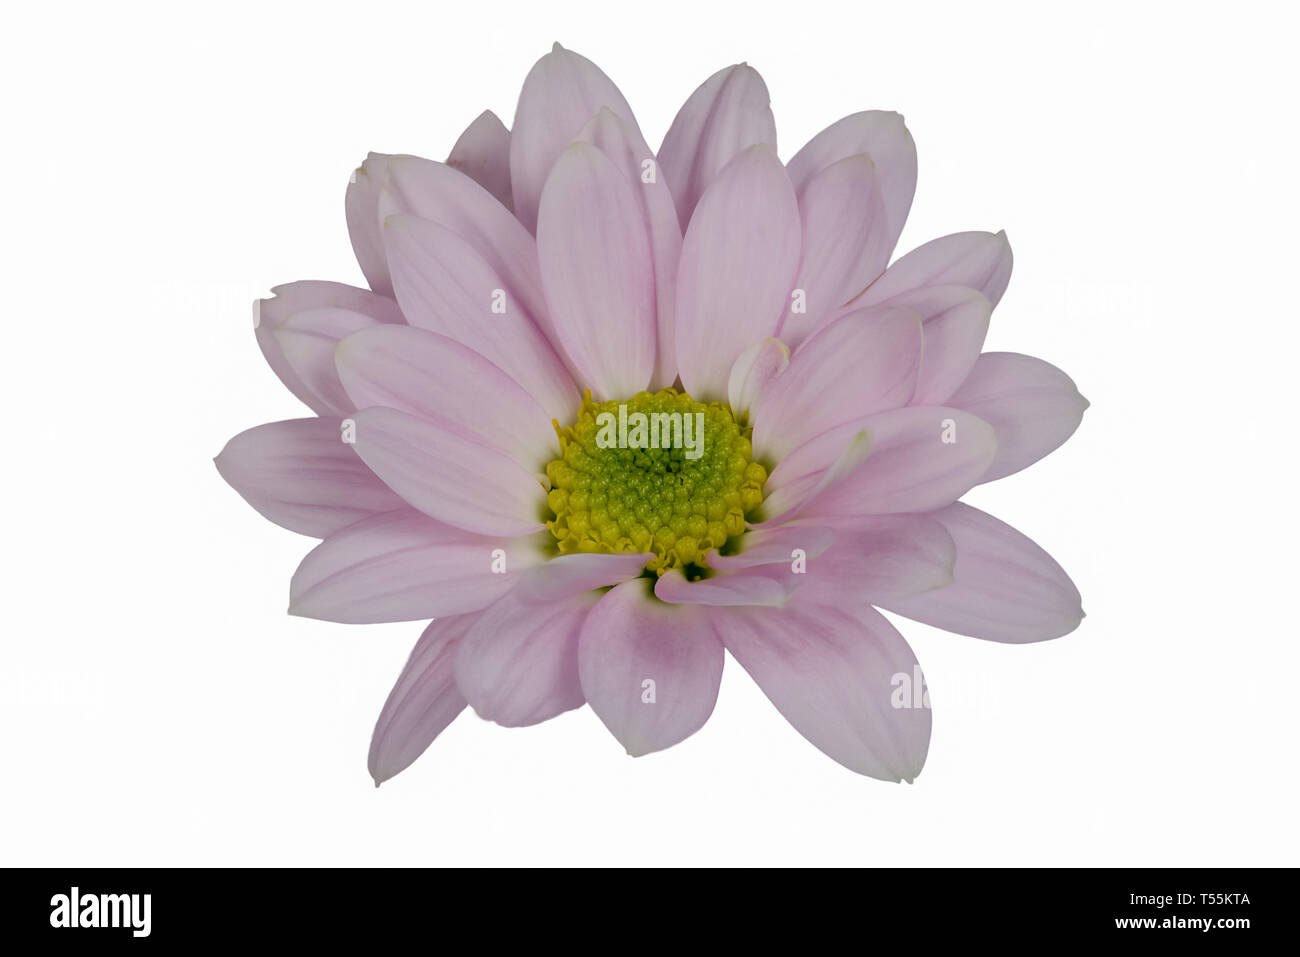 Closeup focus stacked shot of an isolated light lila flower isolated on white background with clipping path - Stock Image